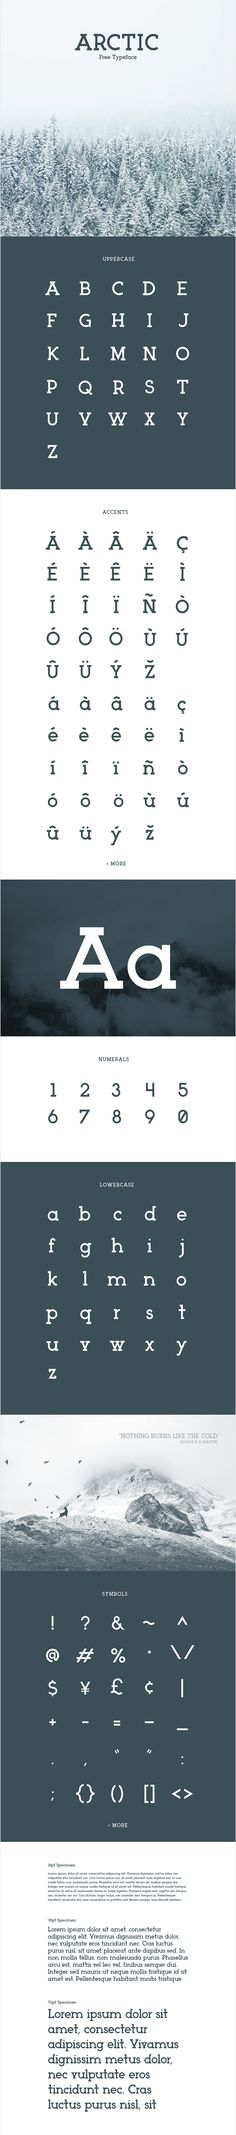 Arctic is a modern slab serif typeface by Matt Ellis.